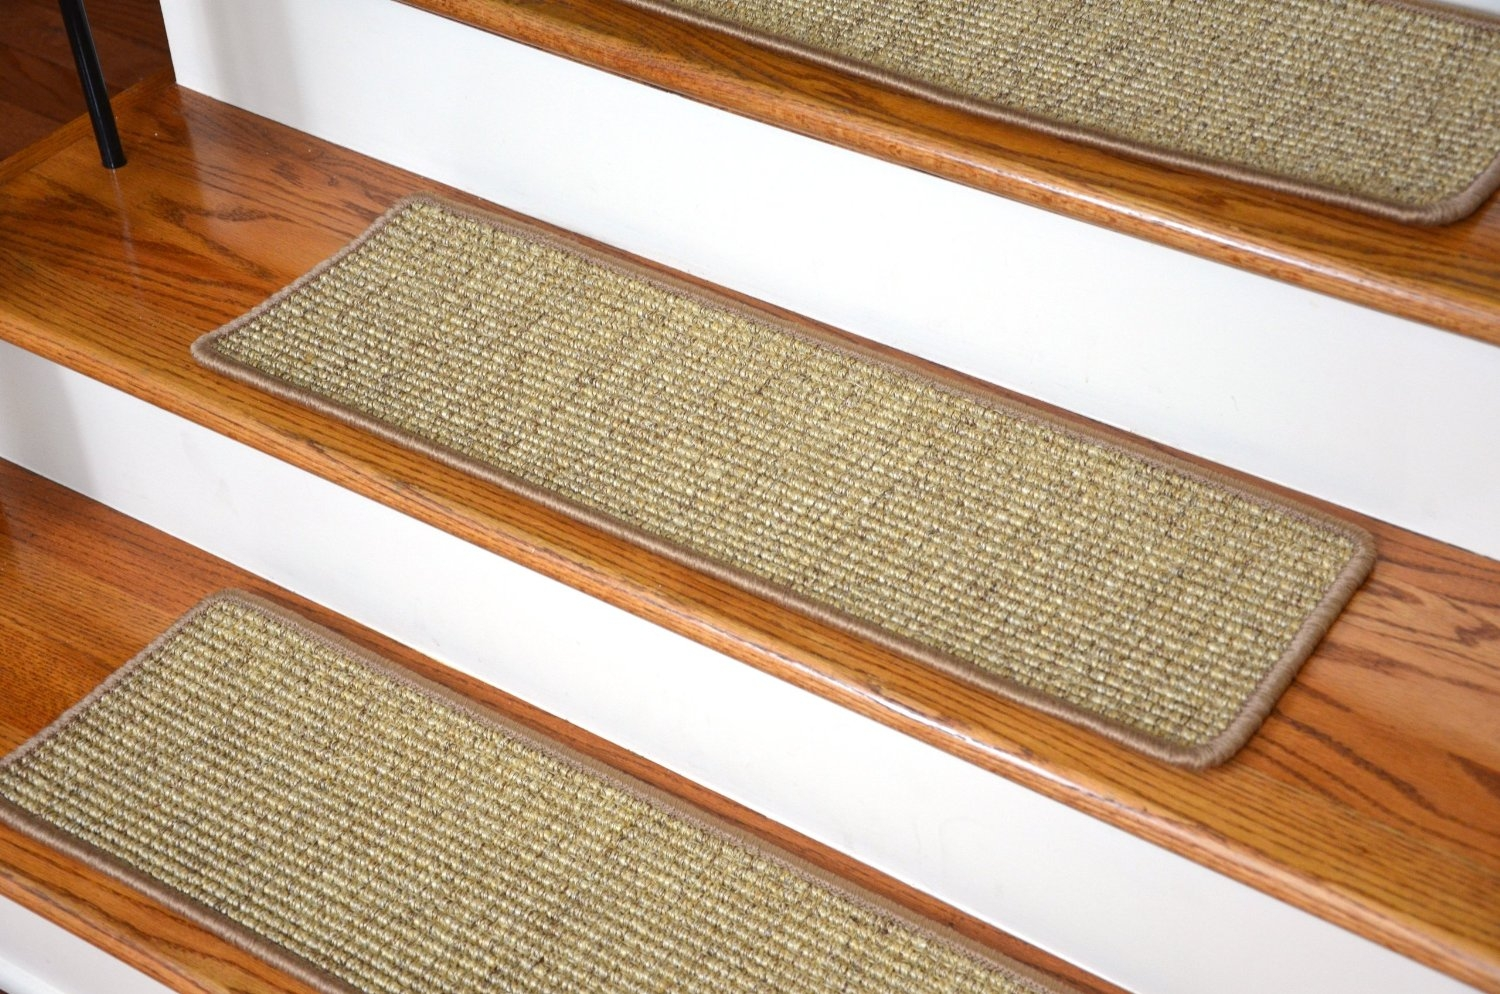 Decor Beautiful Stair Tread Covers Make An Elegant Addition To Intended For Stair Tread Rug Liners (View 9 of 20)